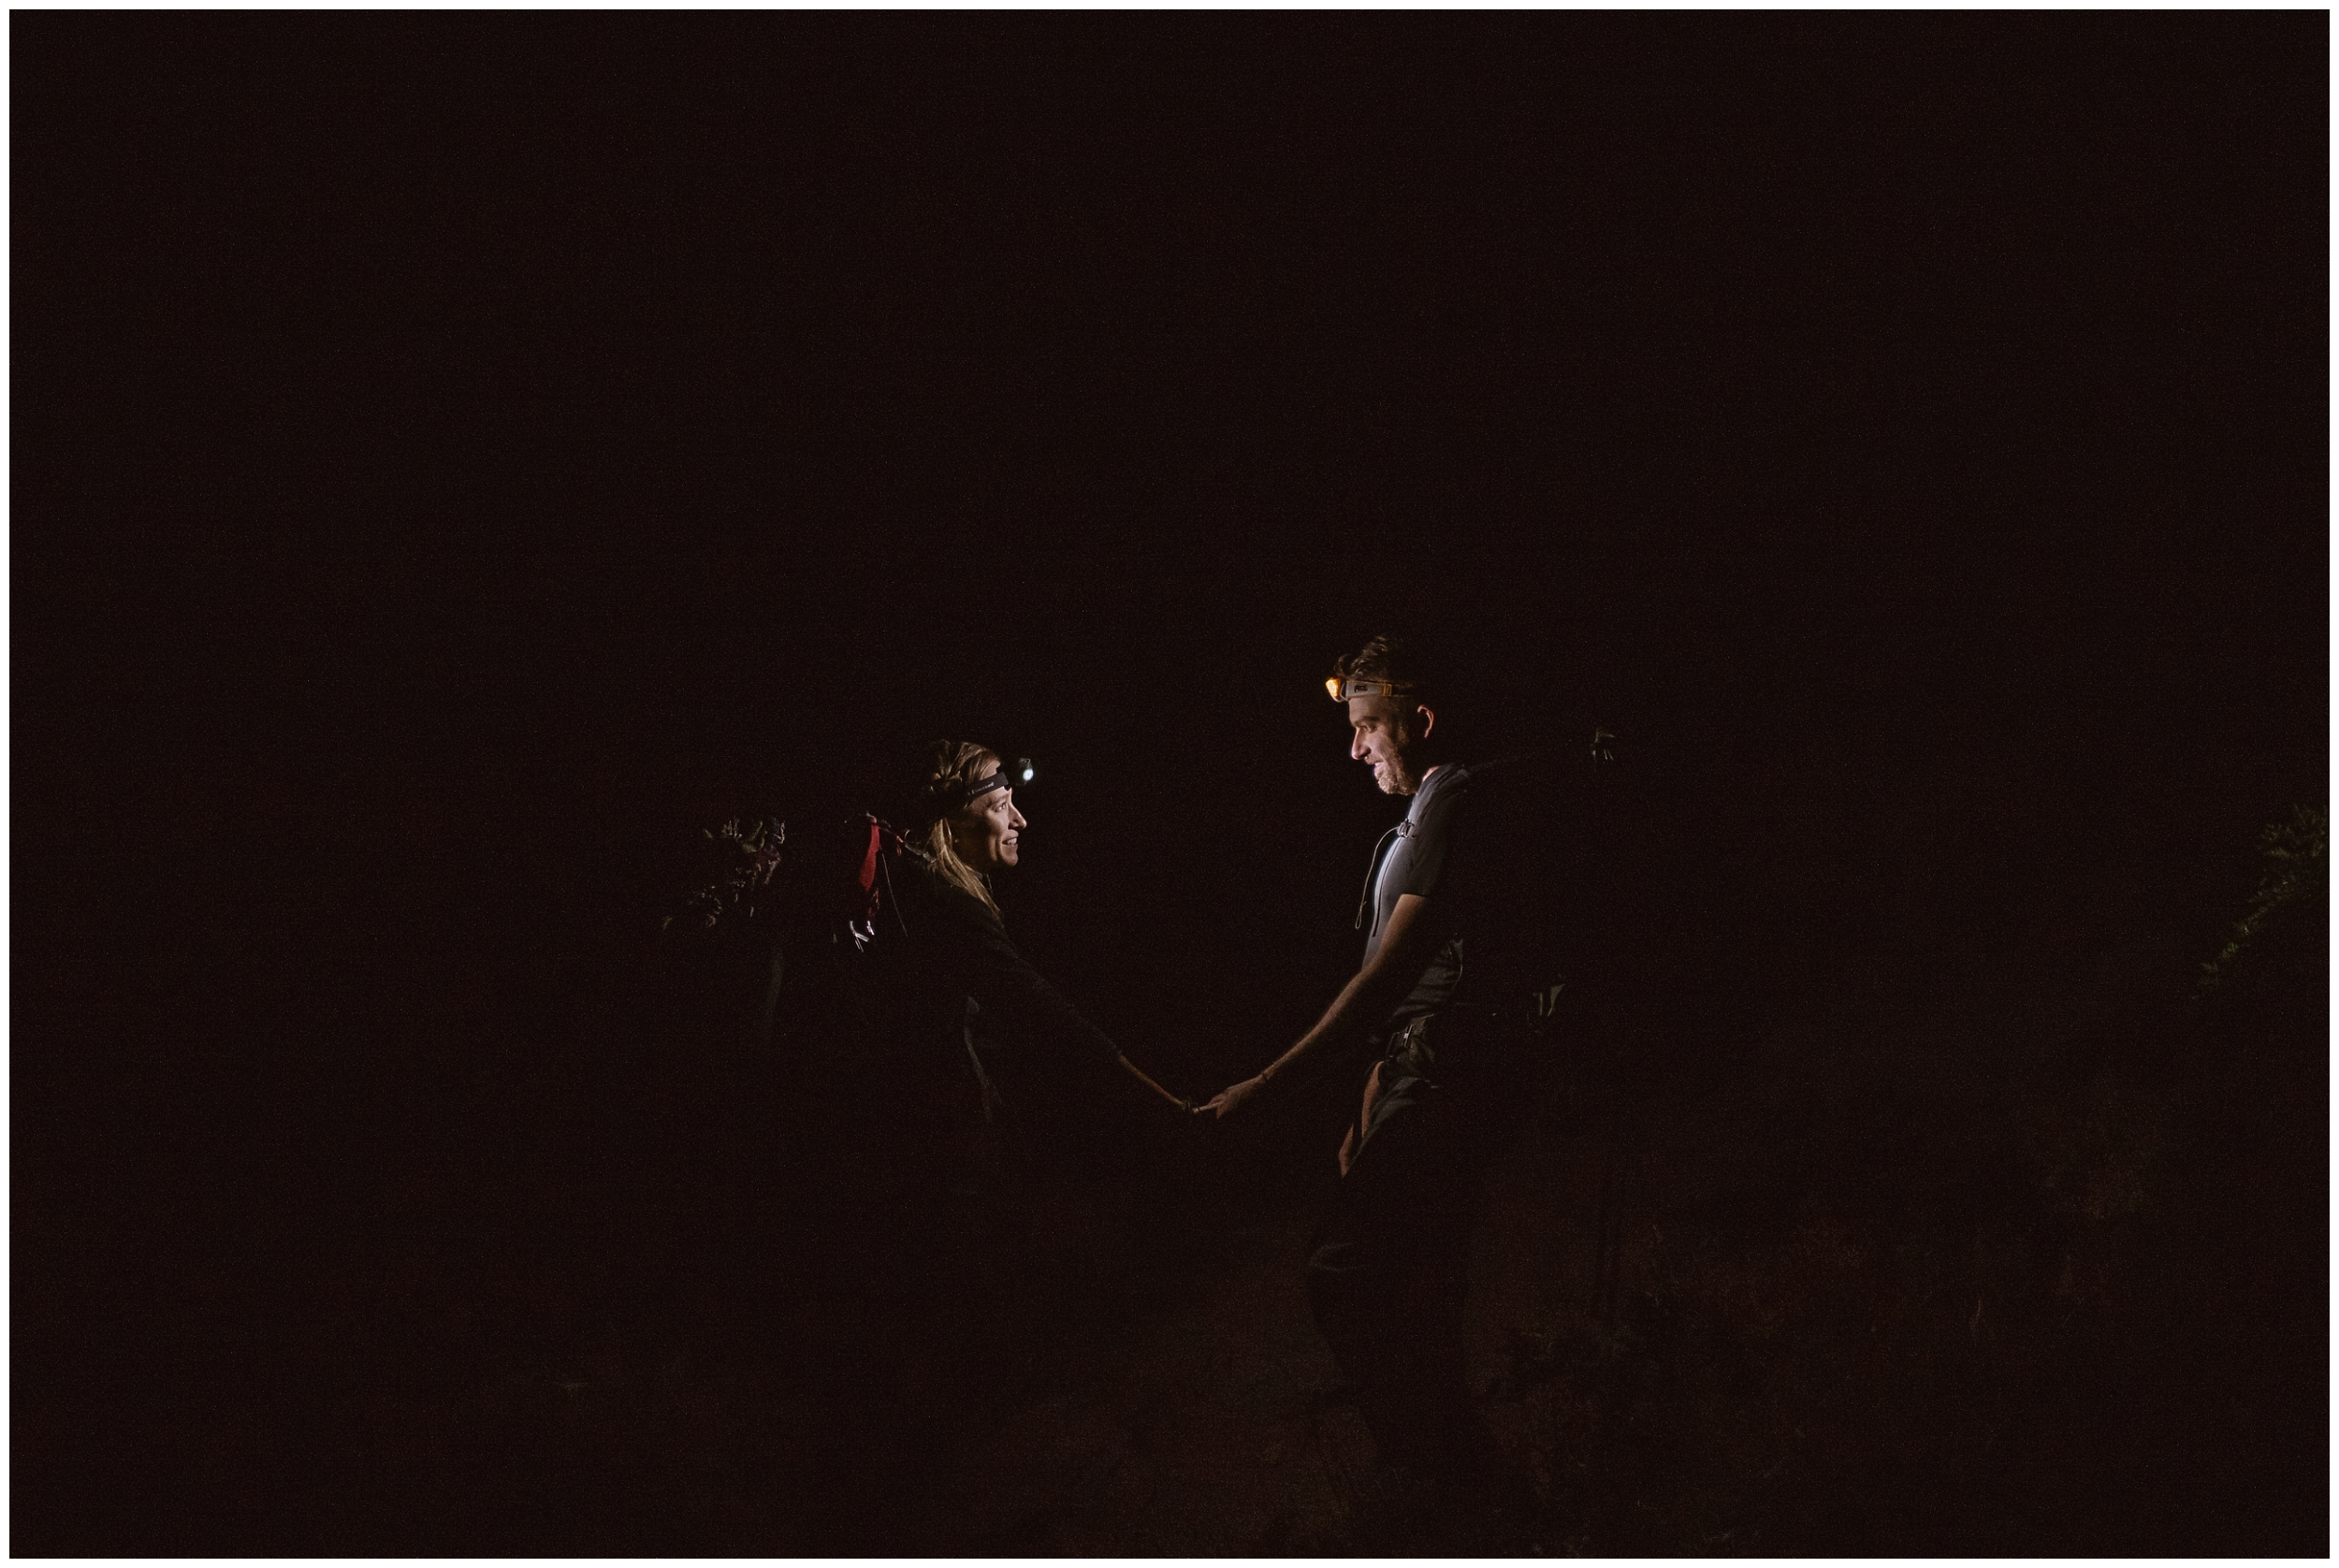 Brecka and Nick chose to elope in the way that meant the most to them — by having an adventure hiking elopement. Brecka and Nick's Colorado mountain wedding was all about them, their unique eloping ideas, and each other. In this elopement photo captured by Adventure Instead, Brecka and Nick take hands in the dark, lit up only by their headlamps.